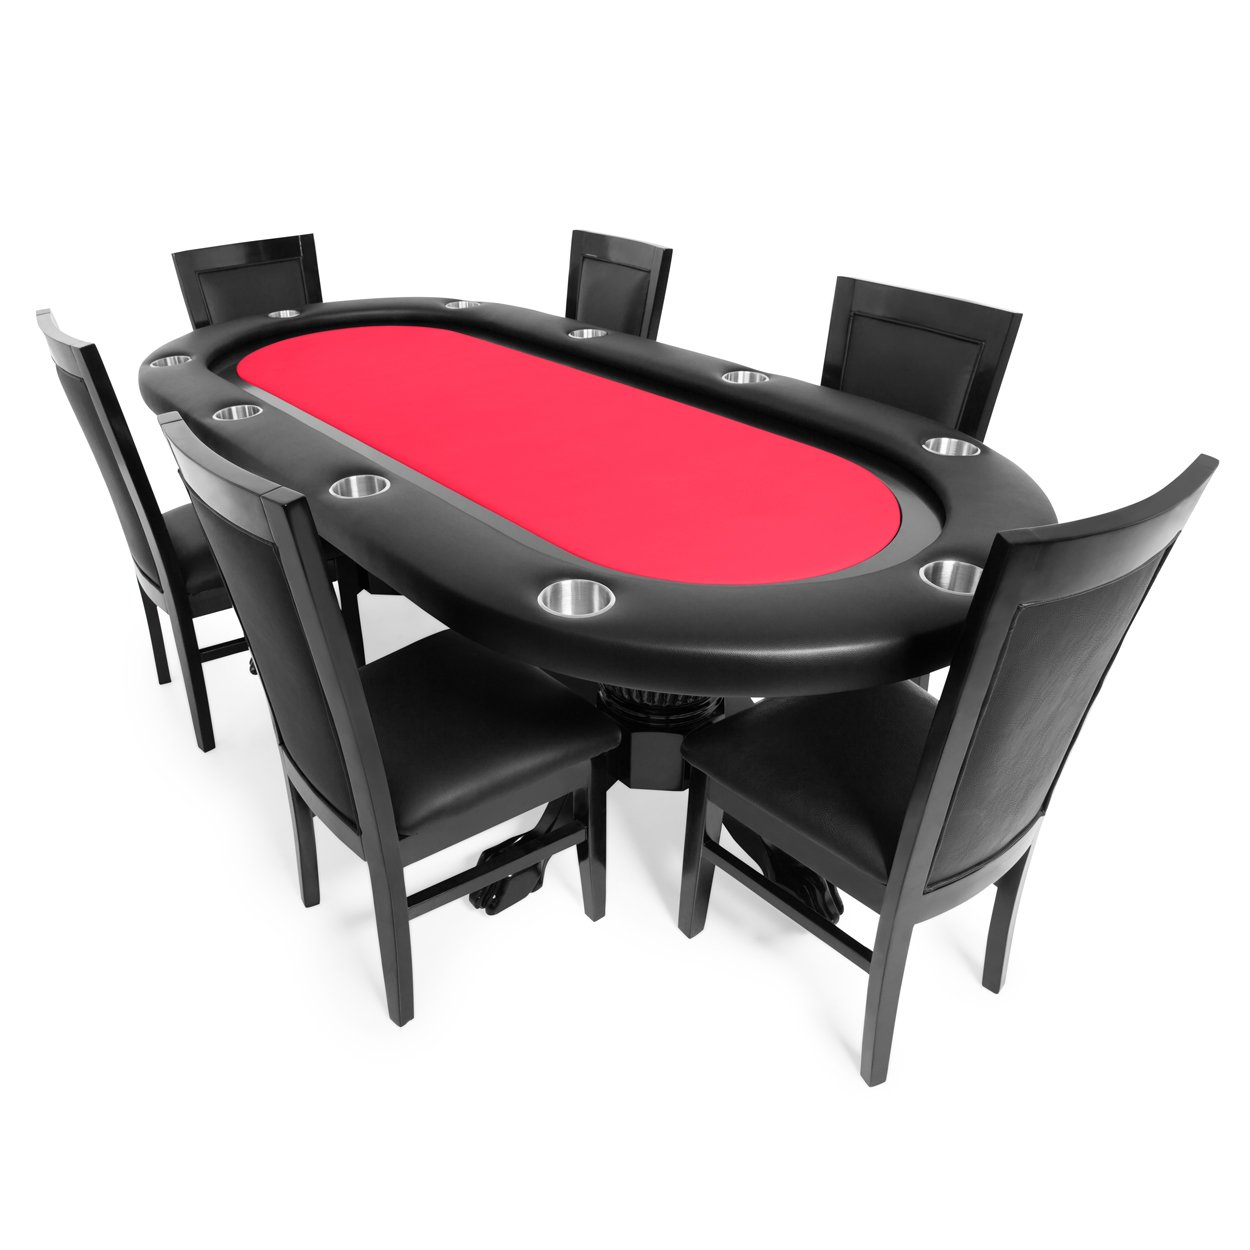 BBO Poker Elite Poker Table for 10 Players with Red Felt Playing Surface, 94 x 44-Inch Oval, Includes 6 Dining Chairs